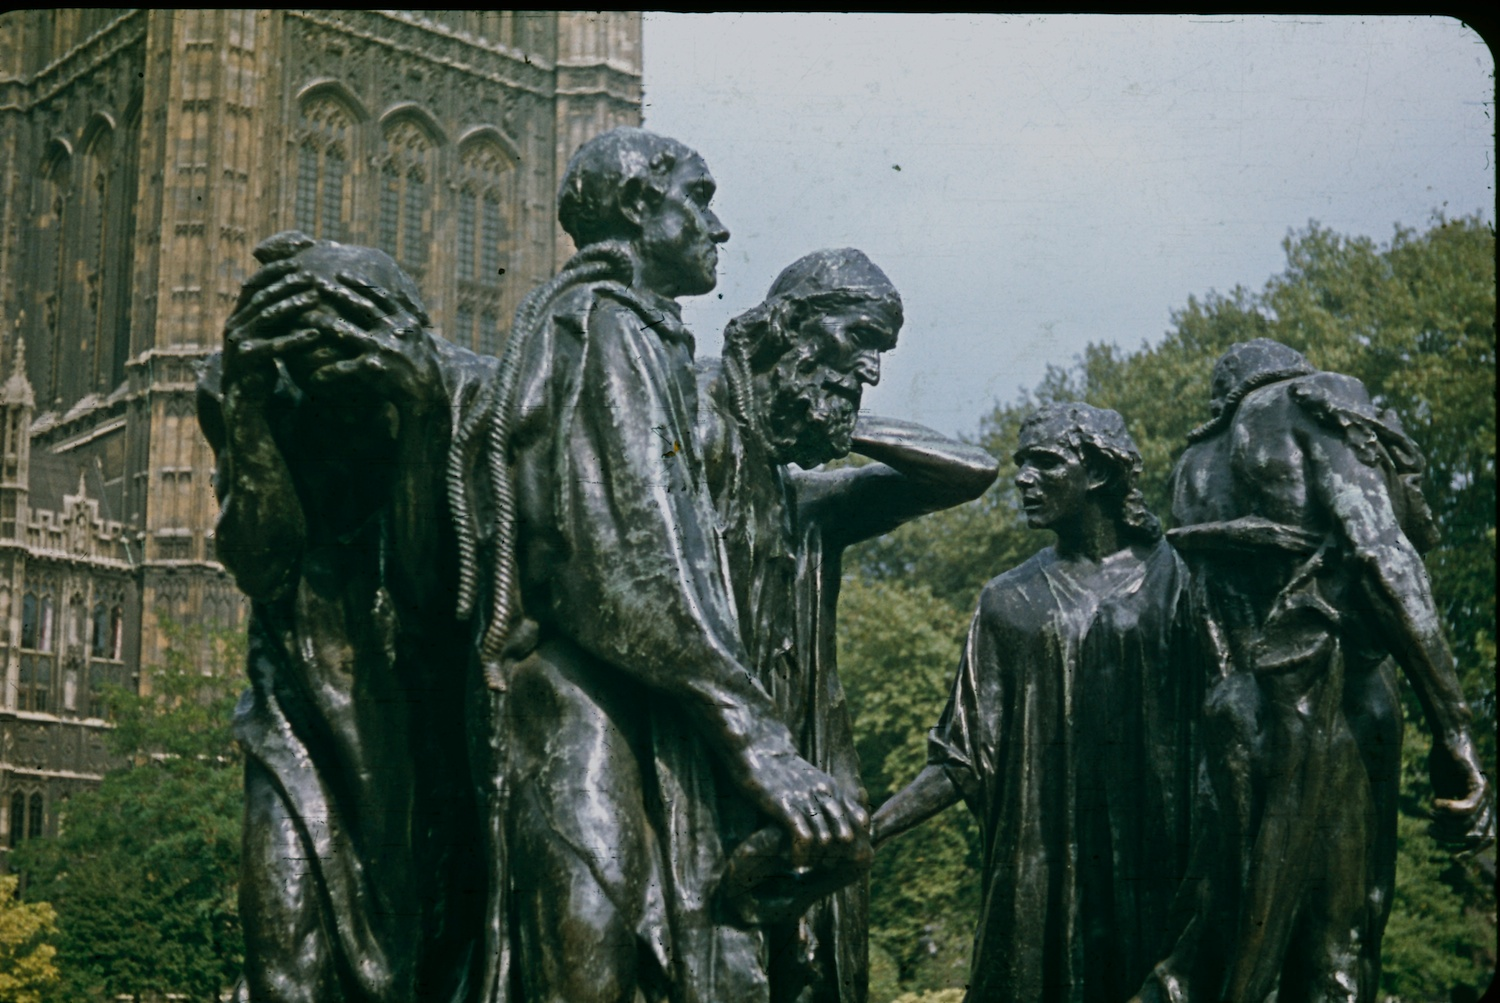 London 1970 Parliament Burghers of Calais statue by Auguste Rodin